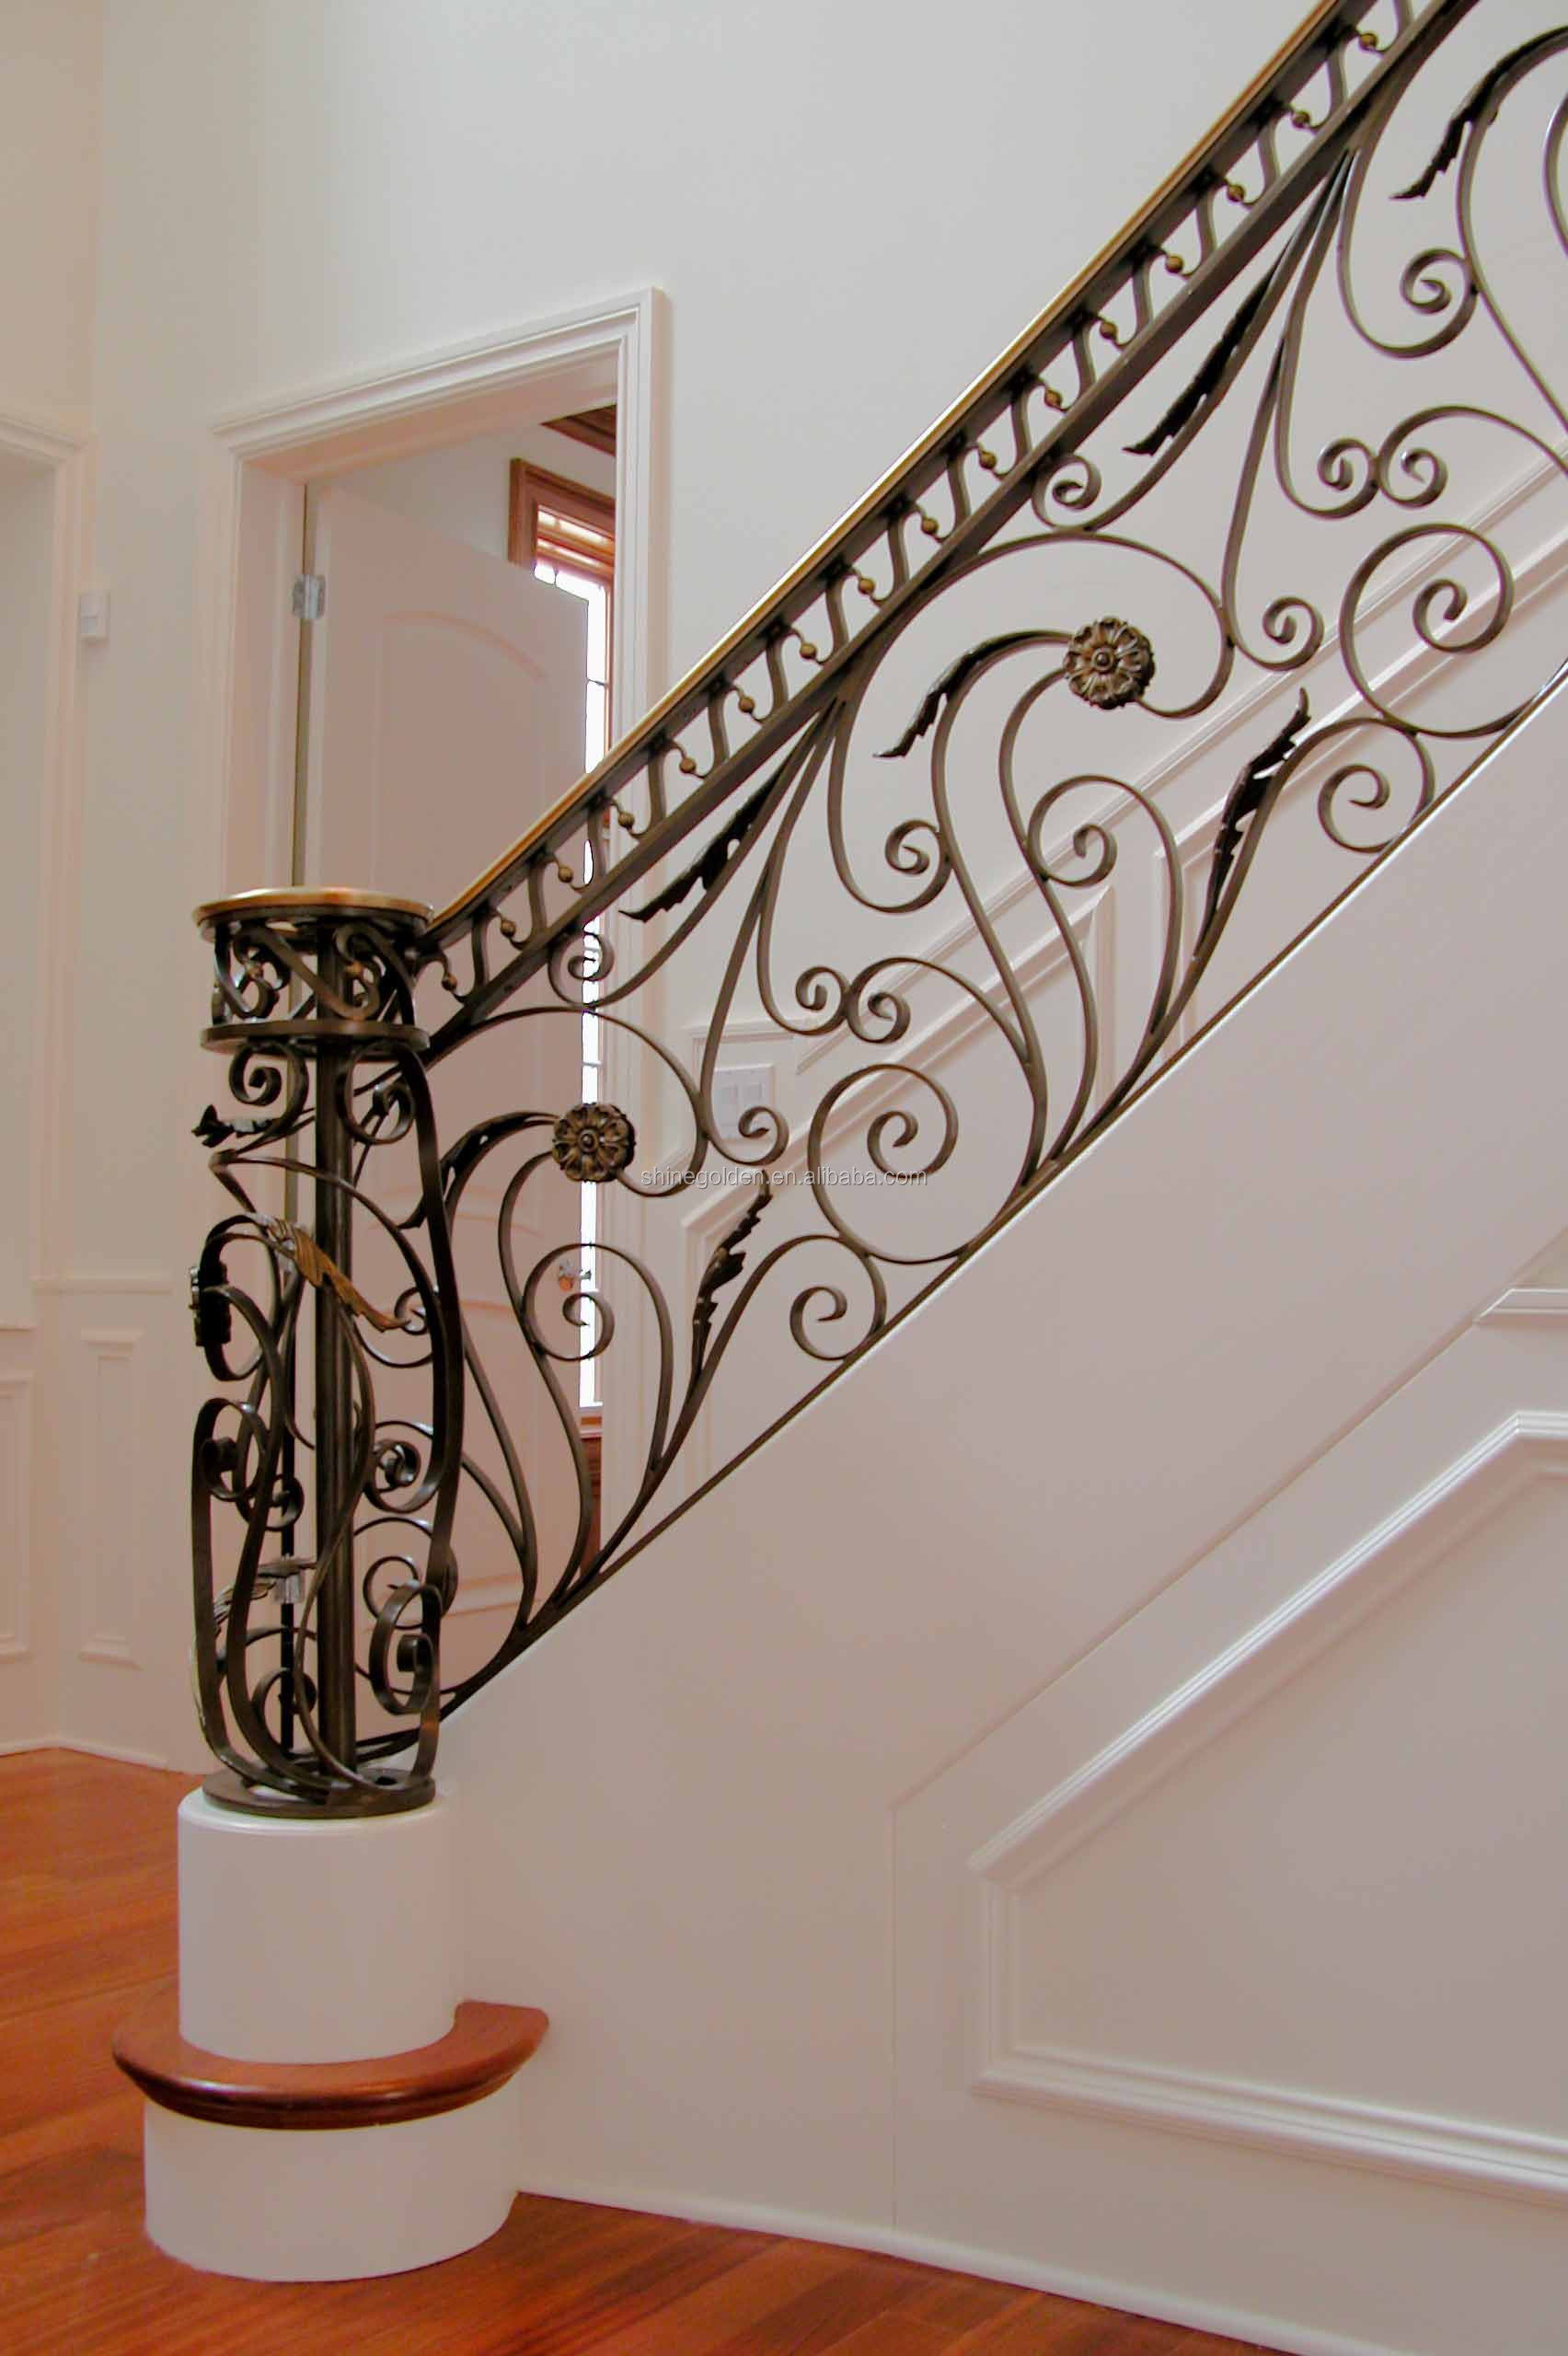 decorative wrought iron indoor stair railings decorative wrought decorative wrought iron indoor stair railings decorative wrought iron indoor stair railings suppliers and manufacturers at alibaba com